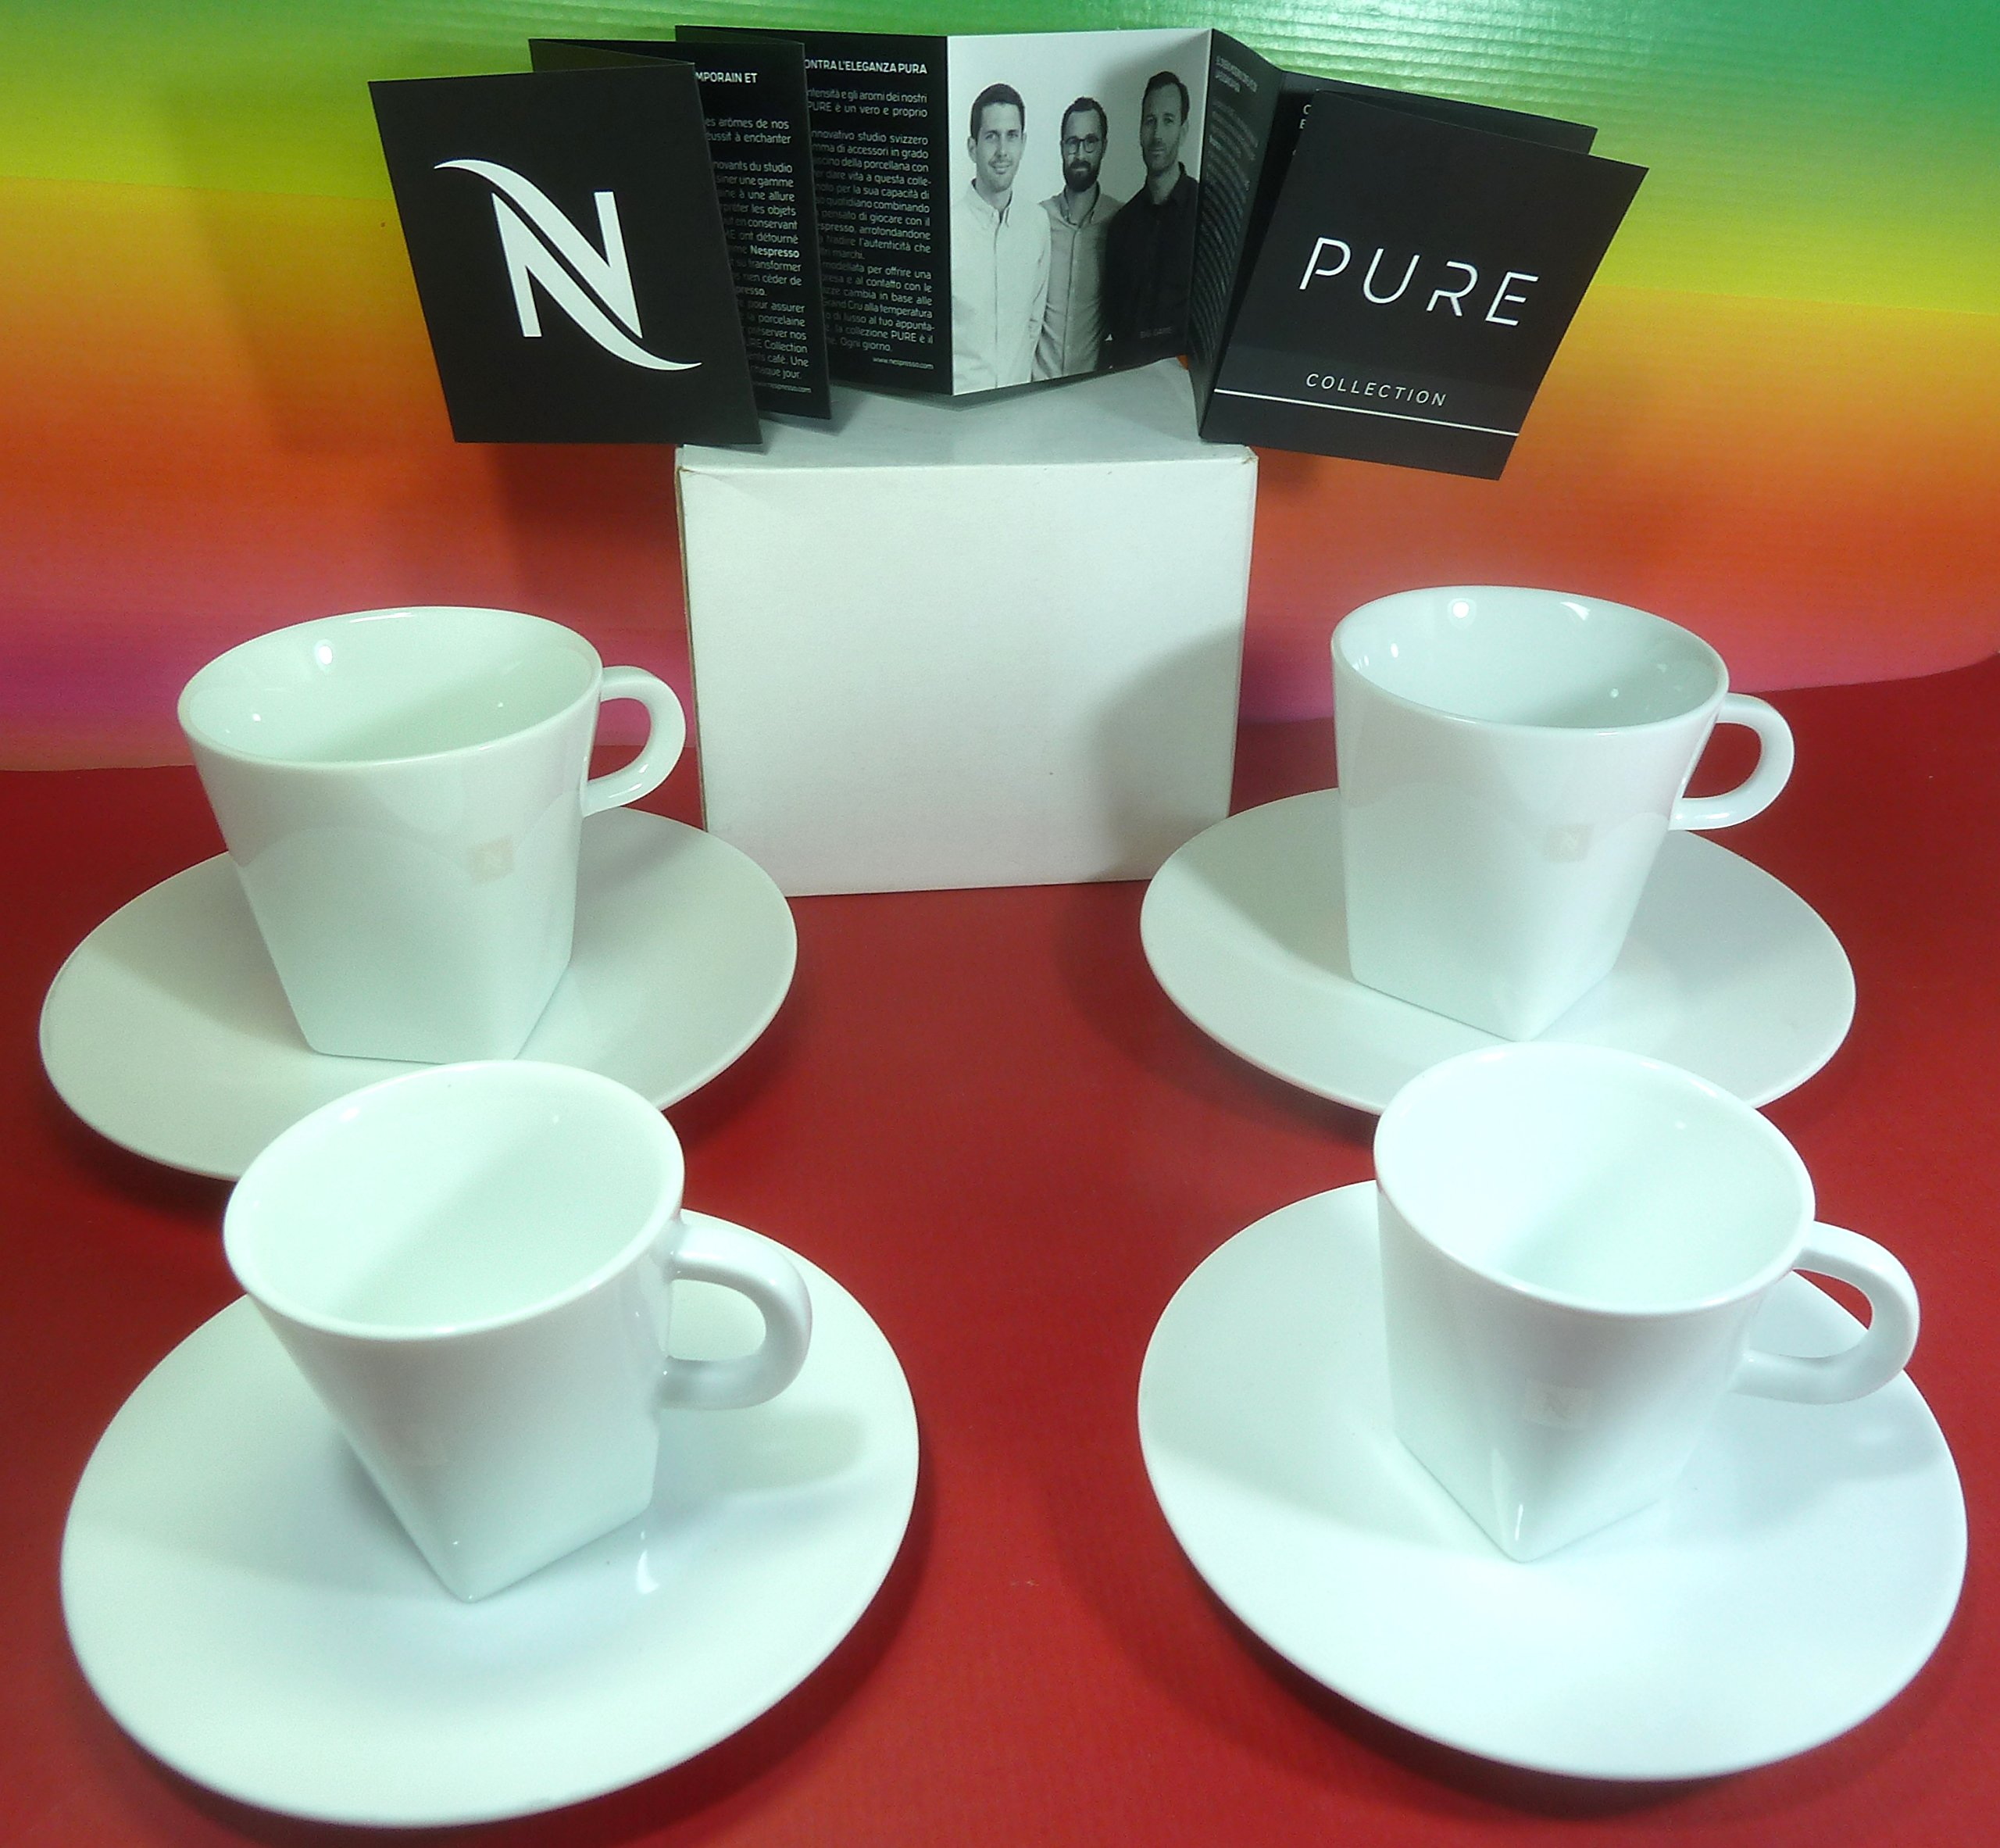 Nespresso Pure Collection 4 White Porcelain Cups with 4 Saucers ,(2 Lungo Cups, 2 Espresso Cups) Wonderful,Big Game Design ,In Brand Luxury Gift Boxes , New